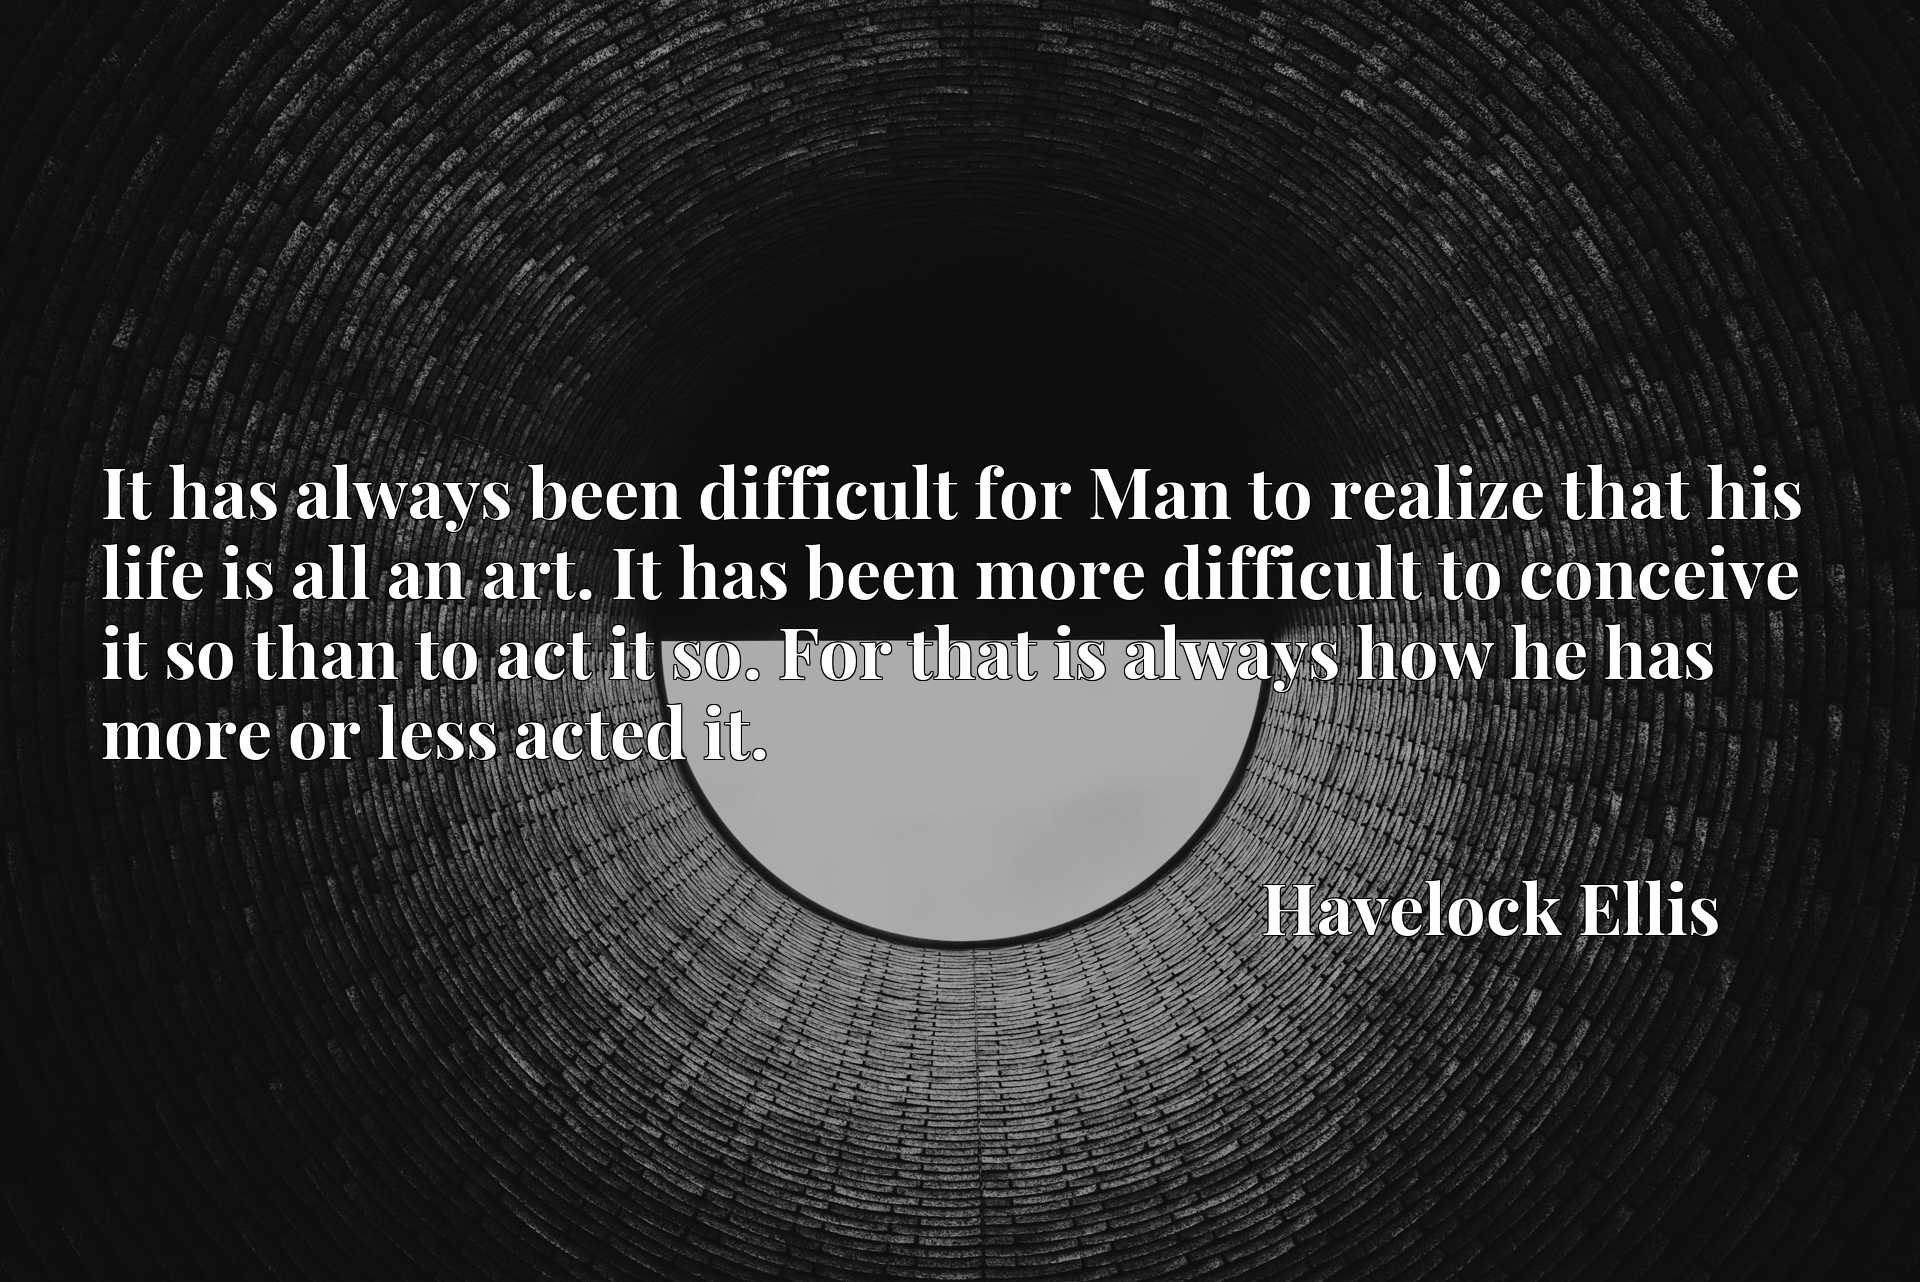 It has always been difficult for Man to realize that his life is all an art. It has been more difficult to conceive it so than to act it so. For that is always how he has more or less acted it.